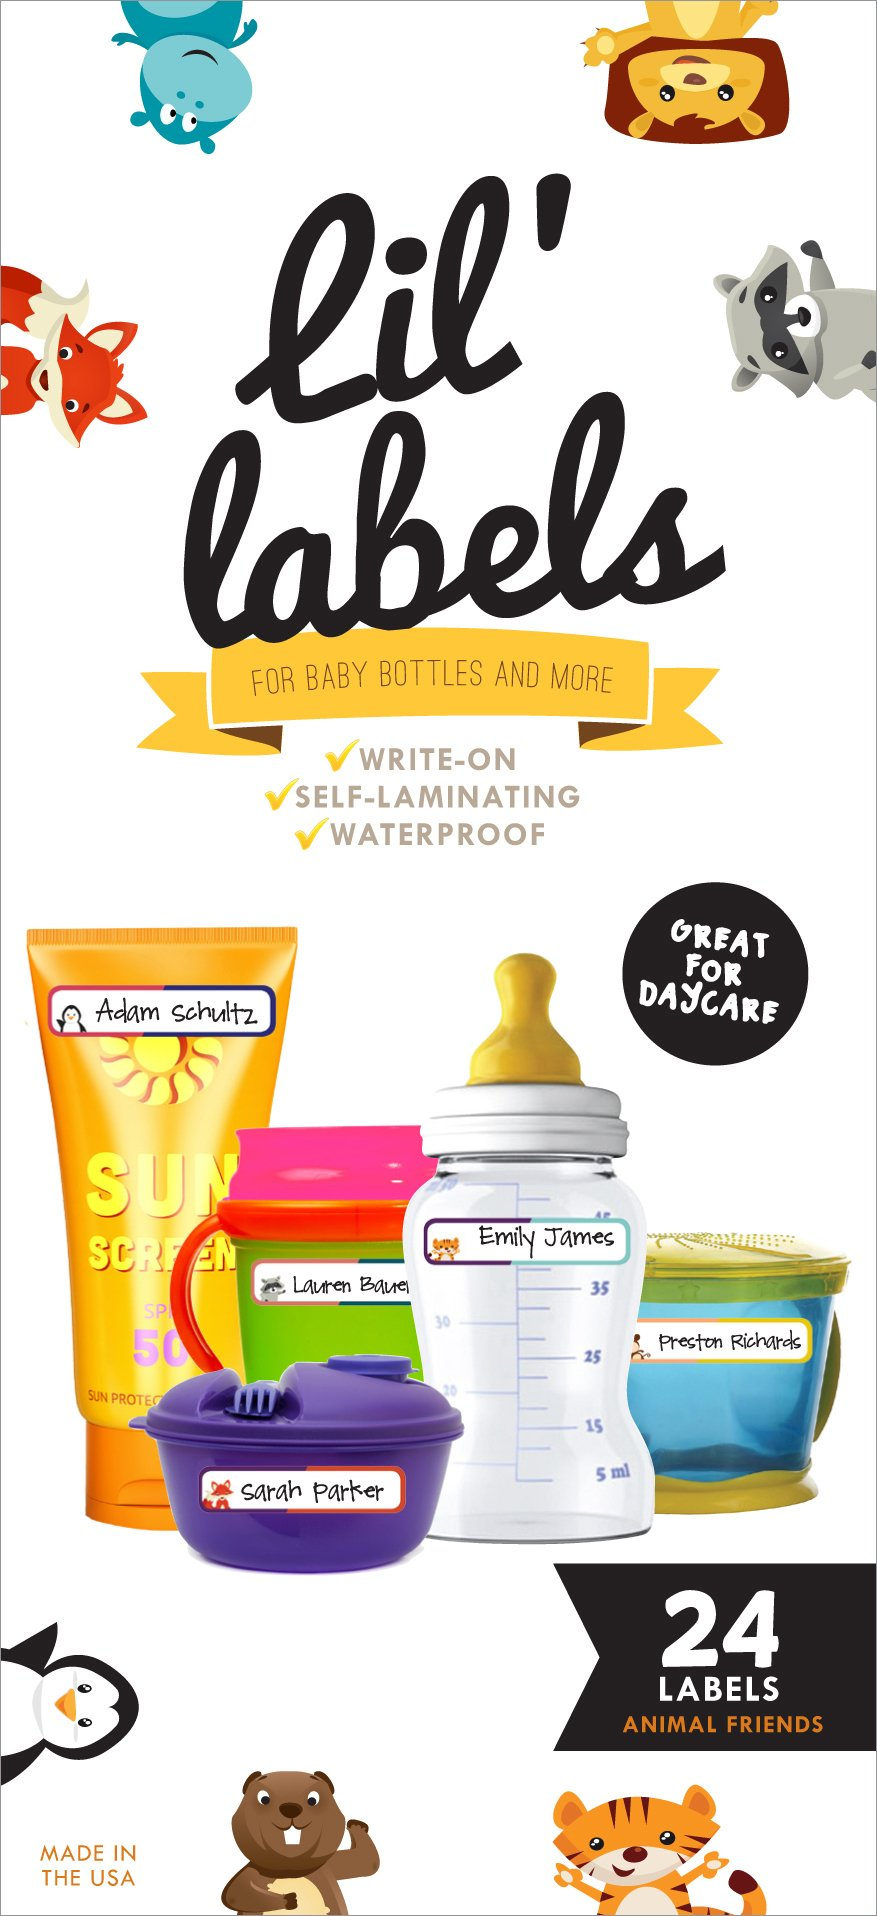 Bottle Labels, Write-On, Waterproof Labels for Baby Bottles for Daycare, 2 Bonus Gifts (Animal Friends)